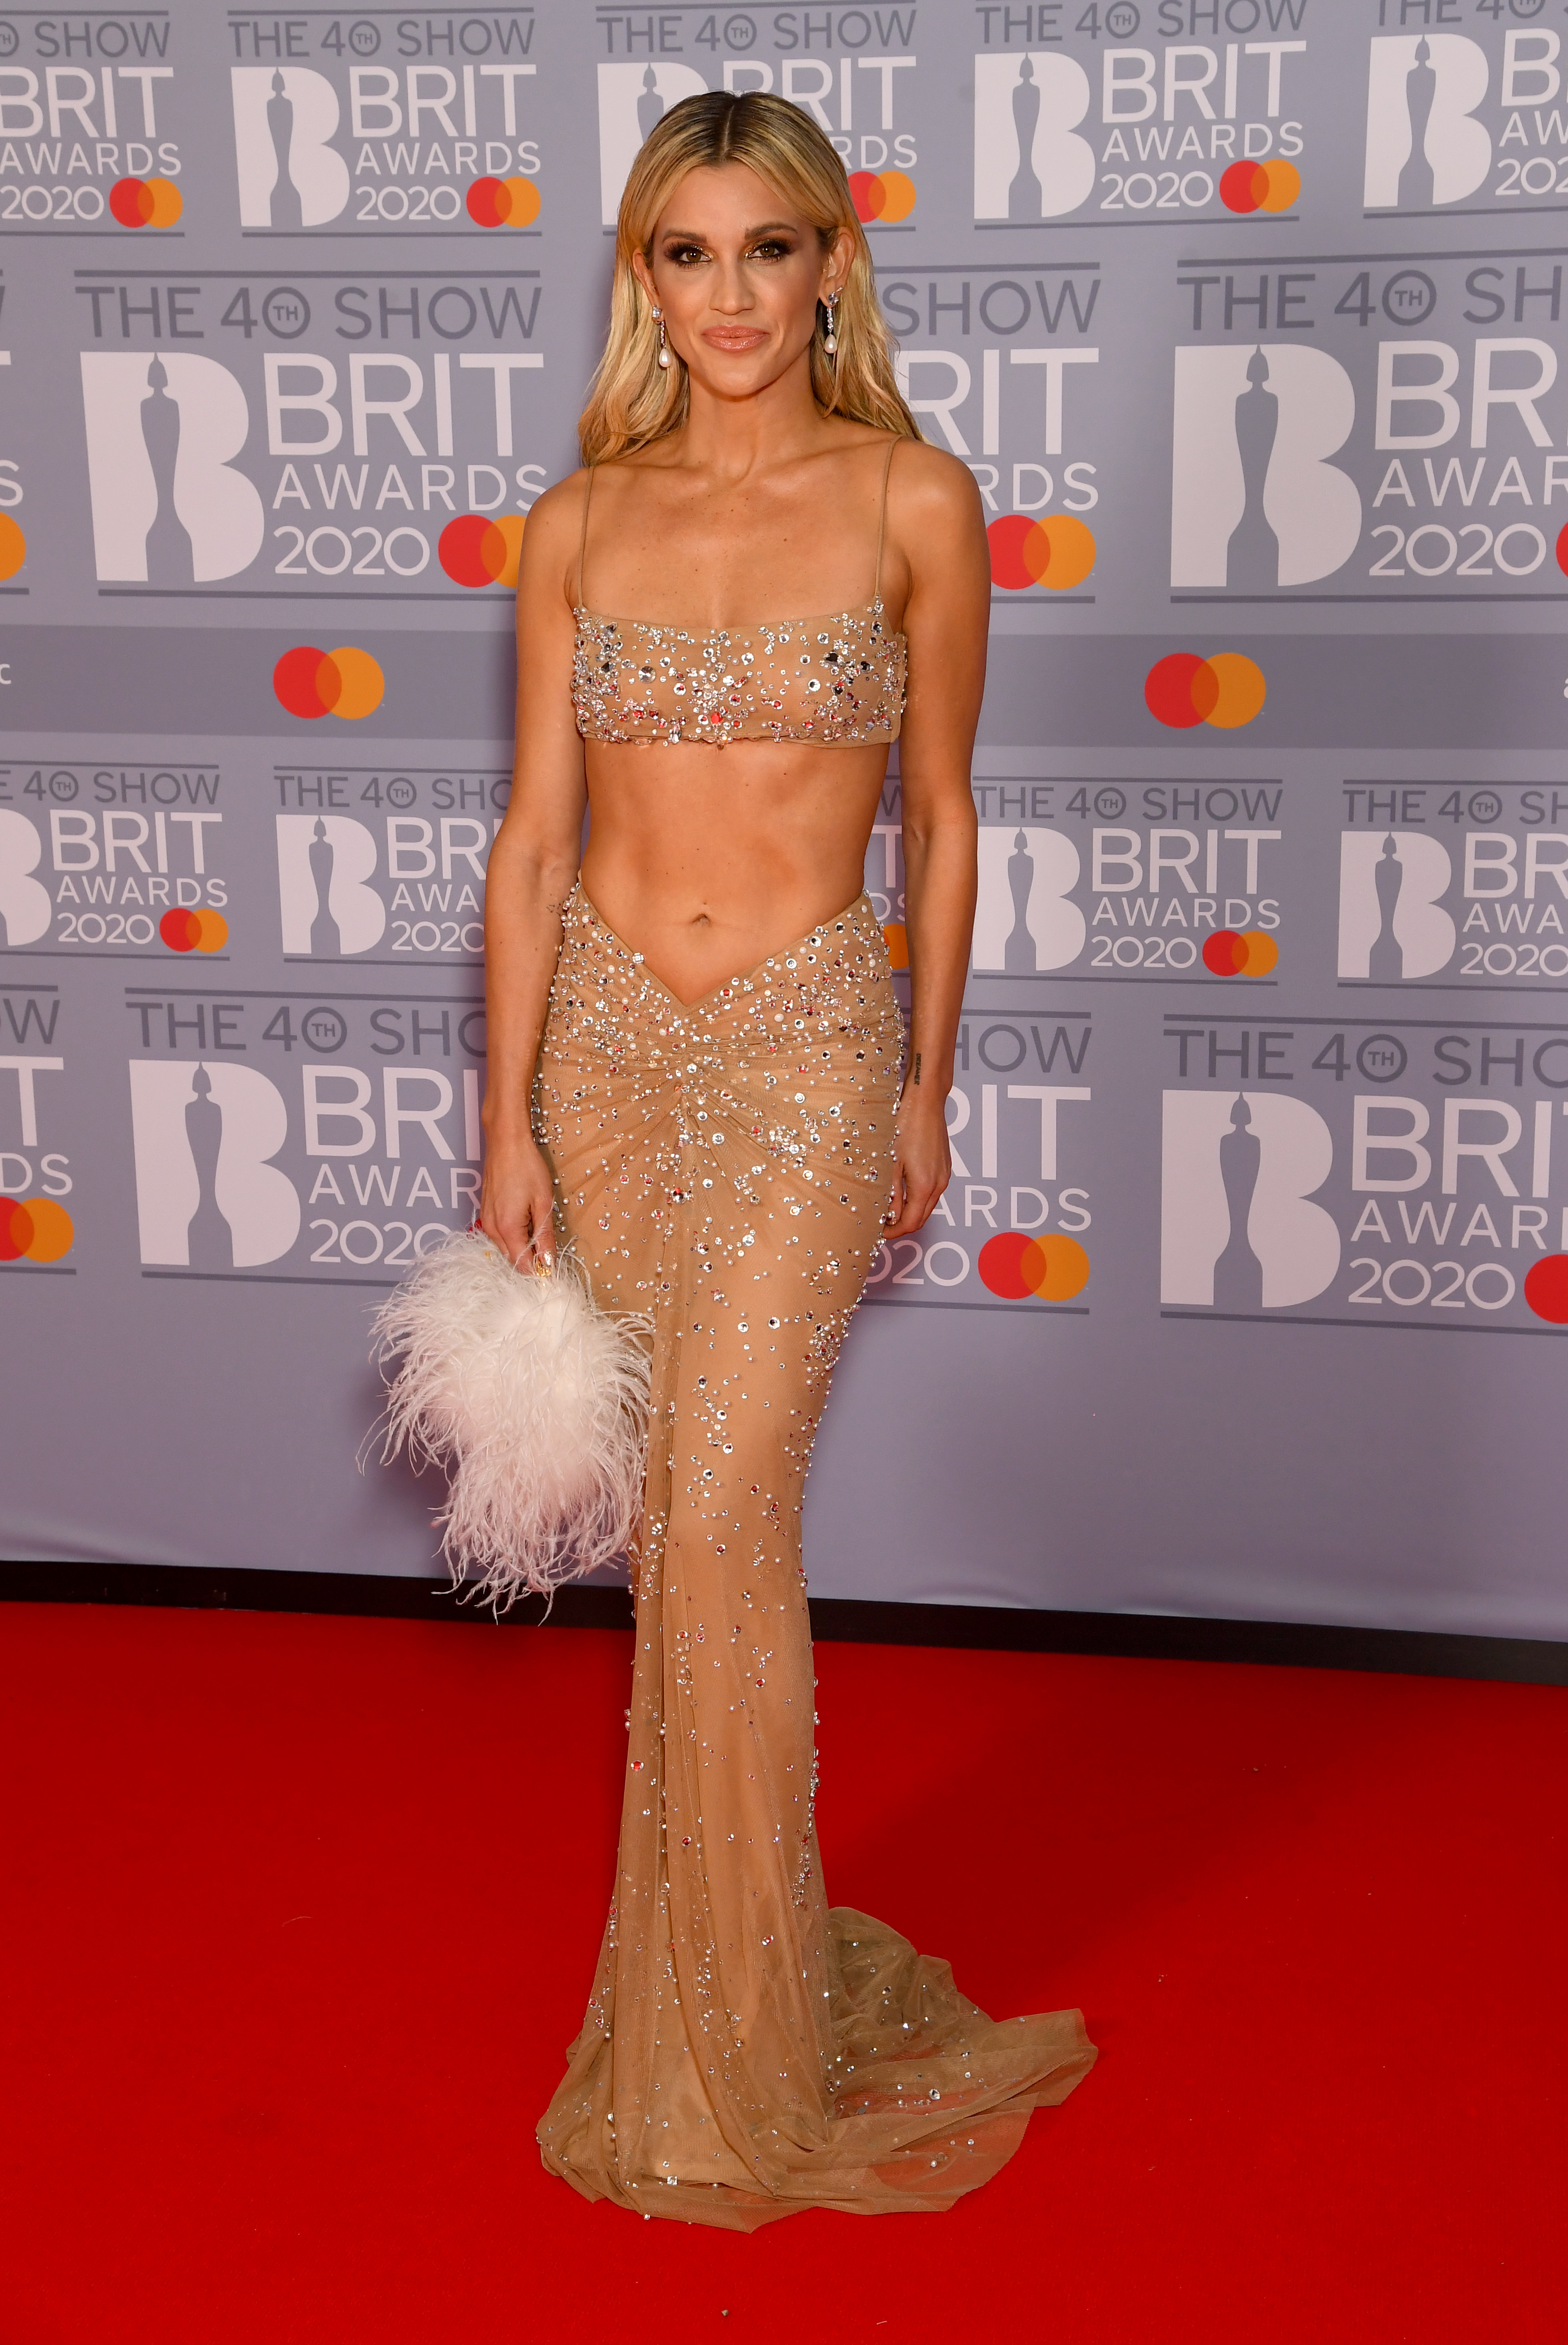 Ashley Roberts attends The BRIT Awards 2020 at The O2 Arena on February 18, 2020 in London, England. (Photo by Dave J Hogan/Getty Images)